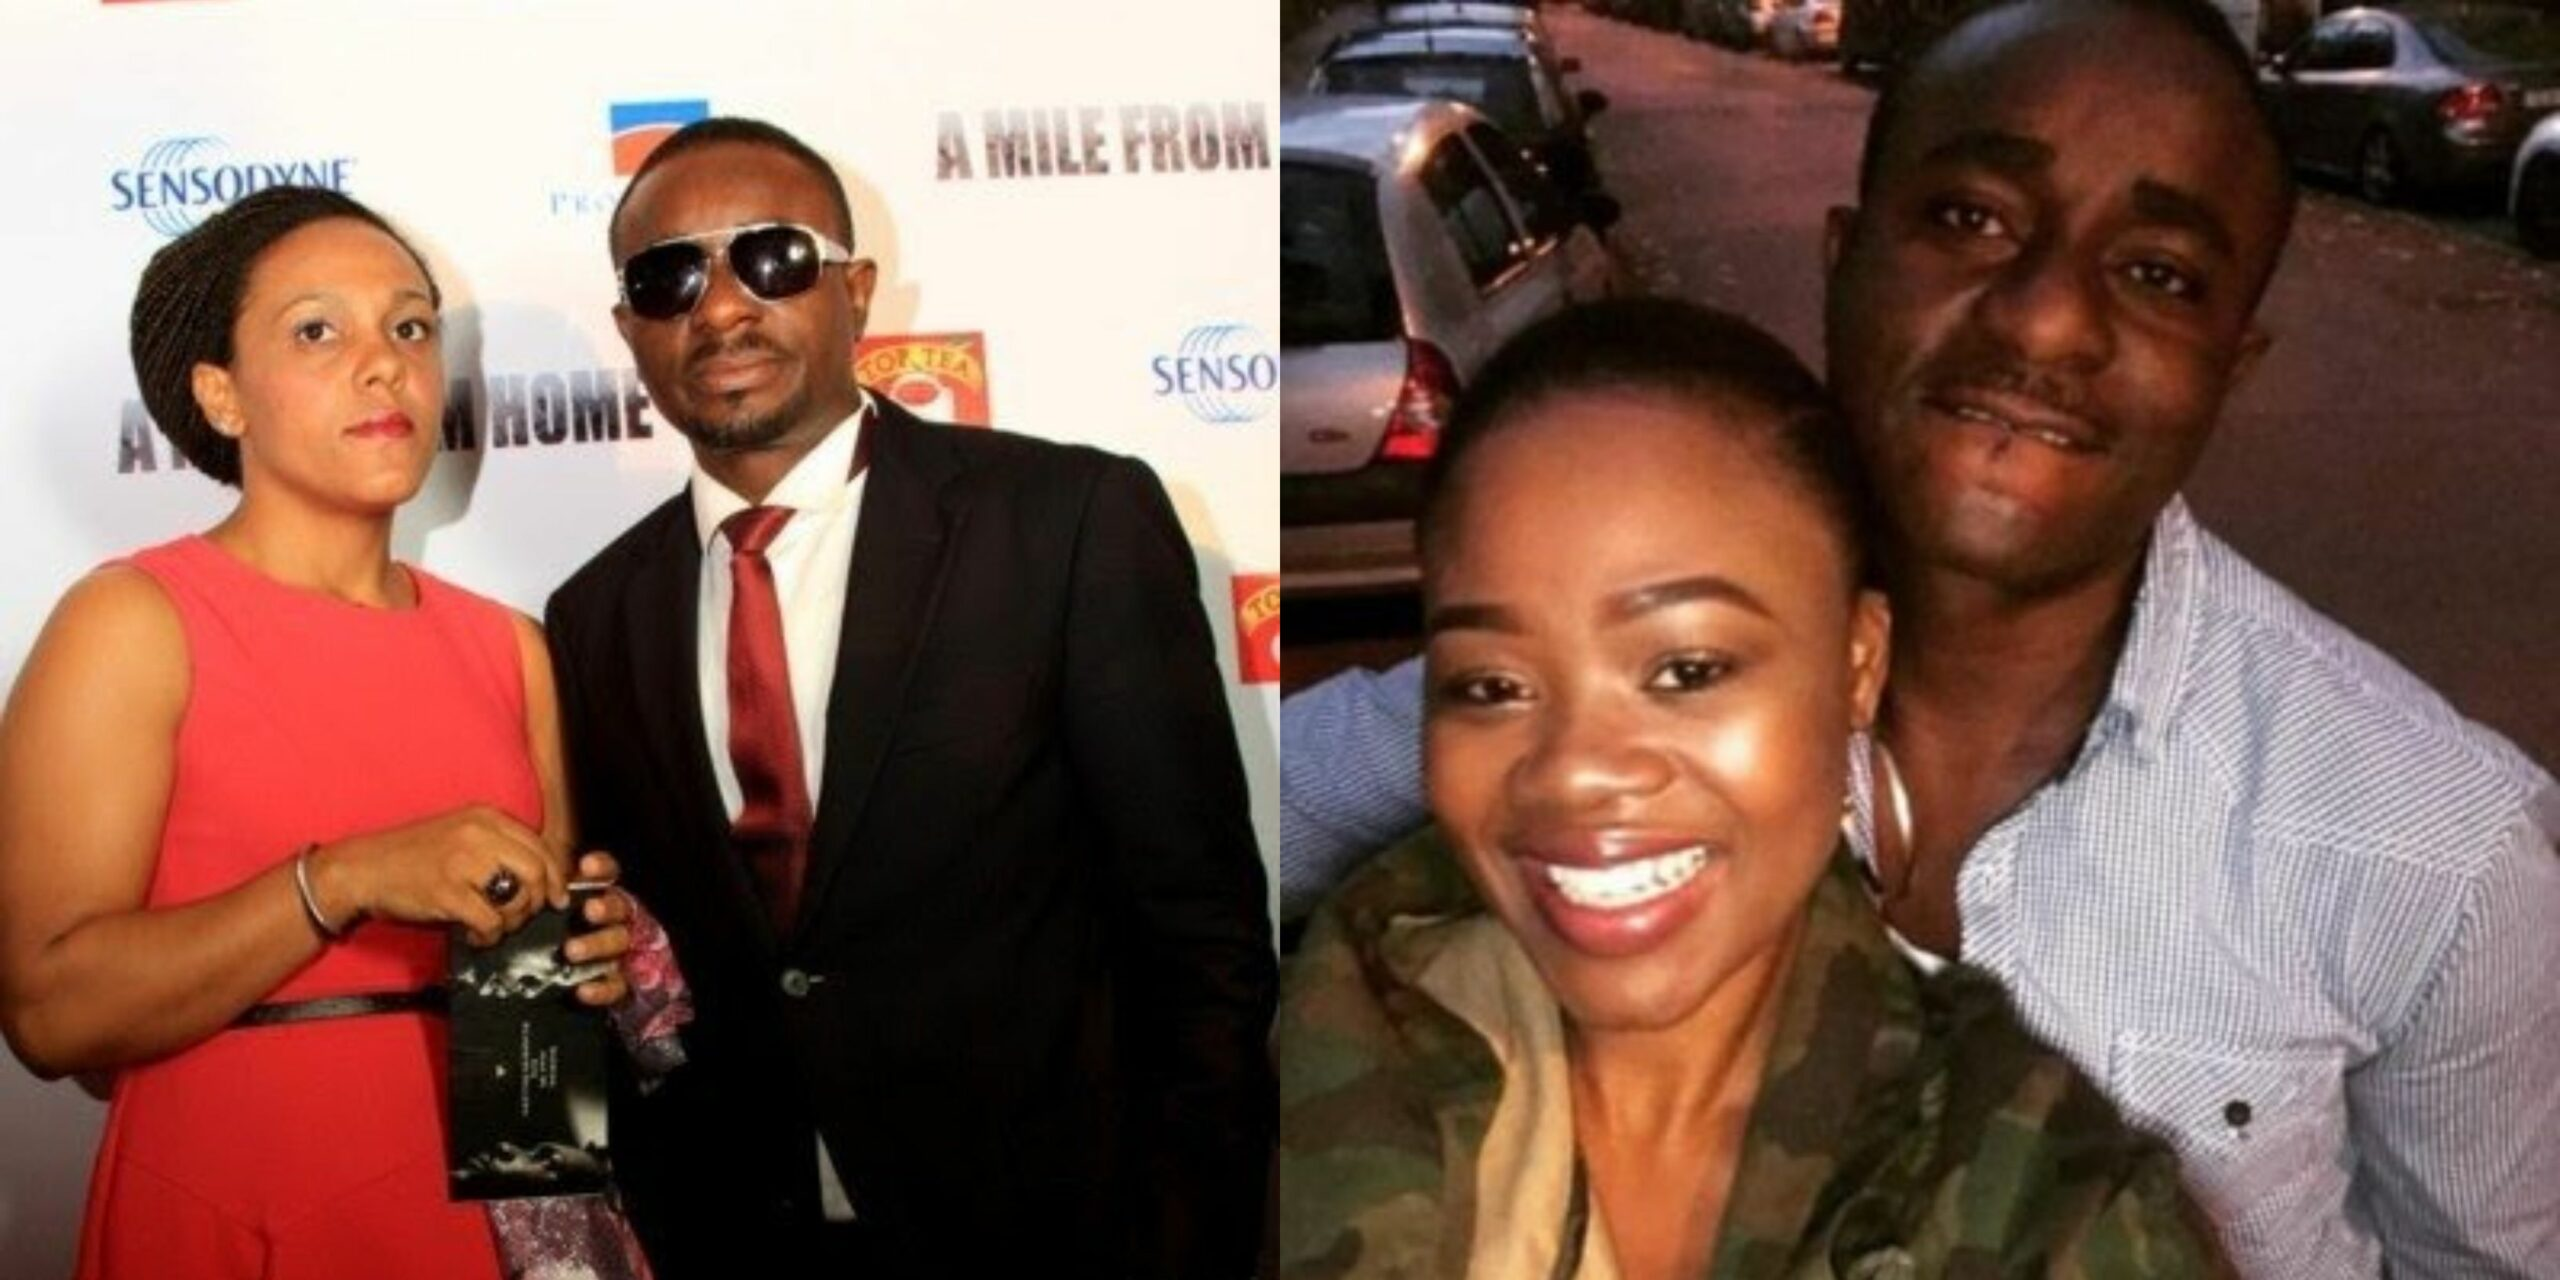 Emeka Ike fires back at follower who said his ex-wife 'Fits him more' than his new wife